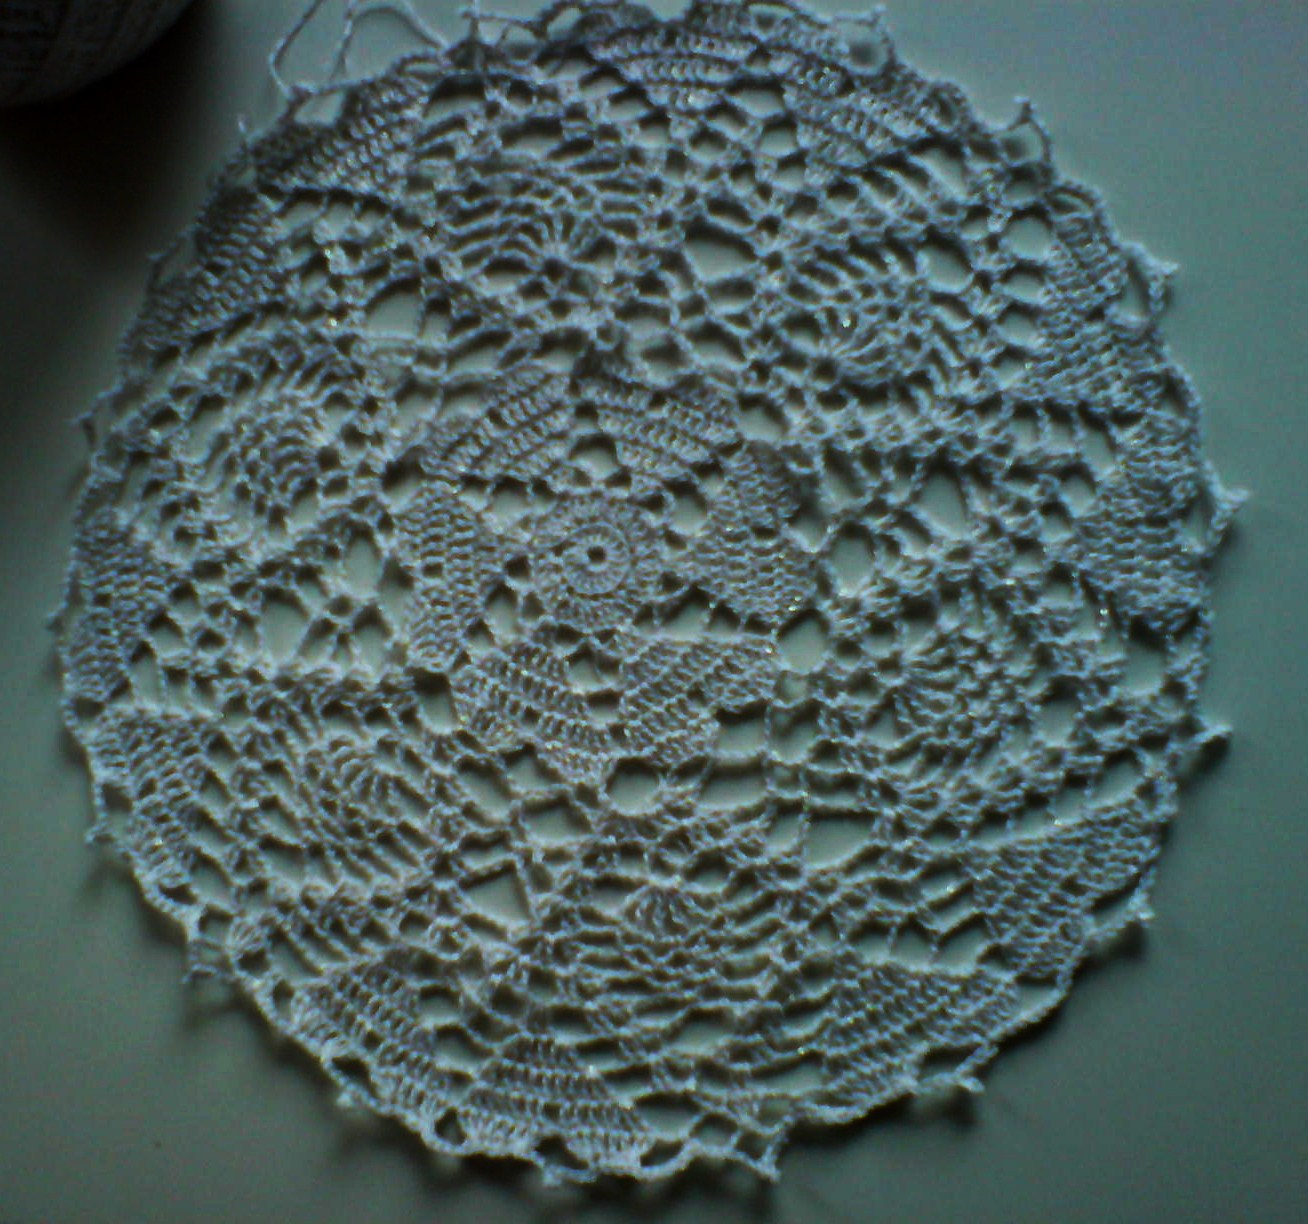 Free Crochet Pattern For Heart Doily : MICROCKNIT CREATIONS: March 2011